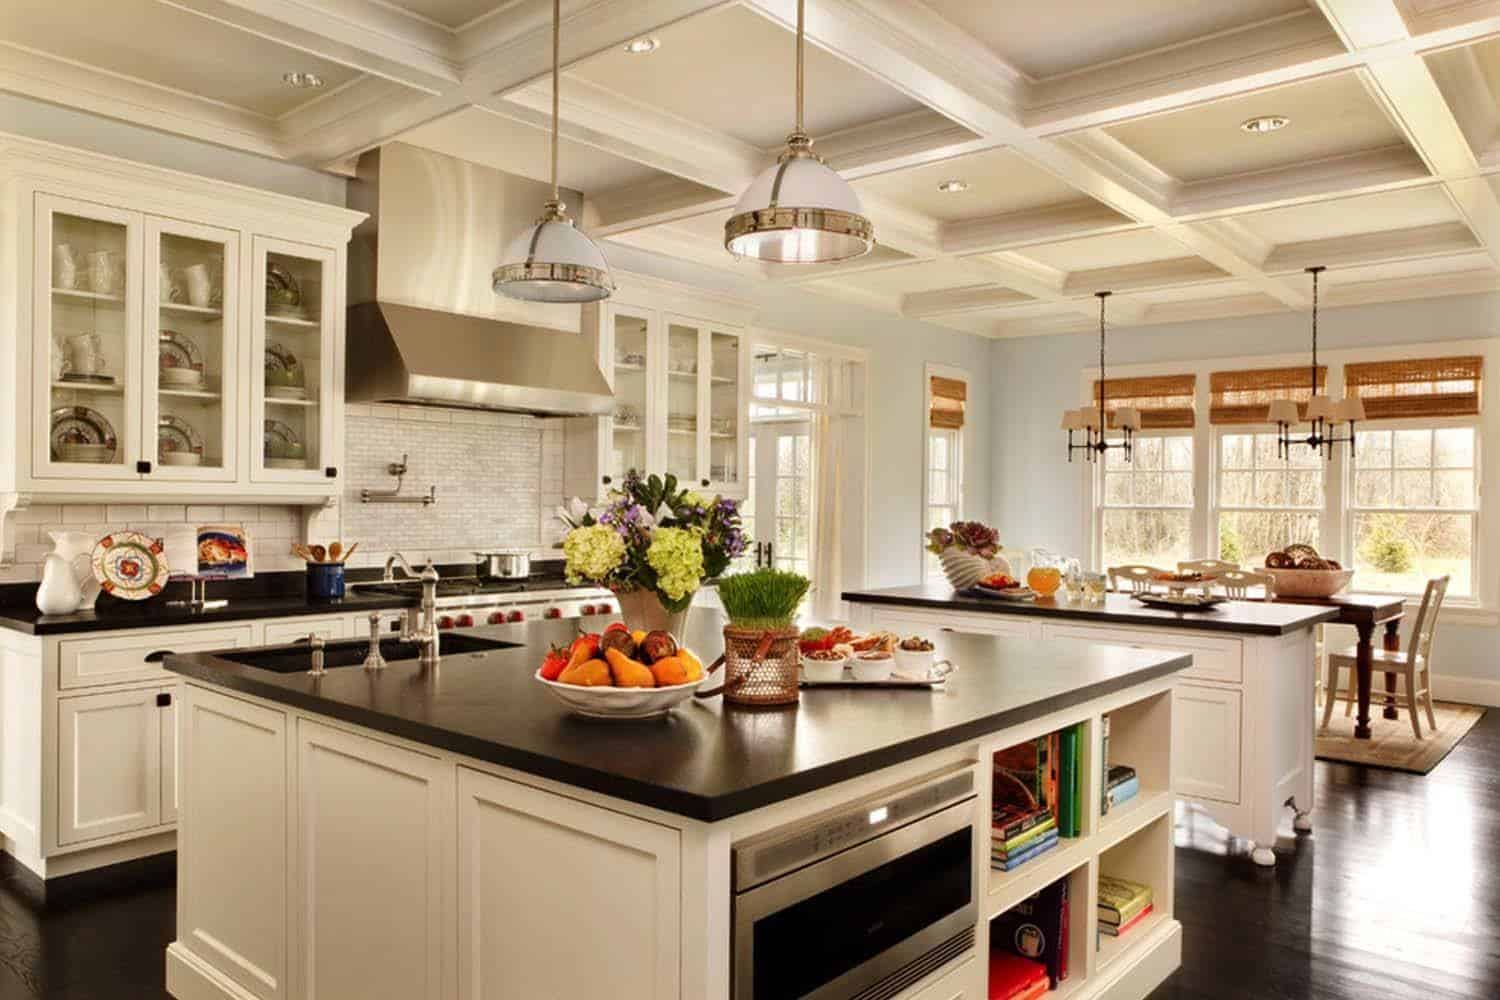 Kitchen Island Ideas-10-1 Kindesign